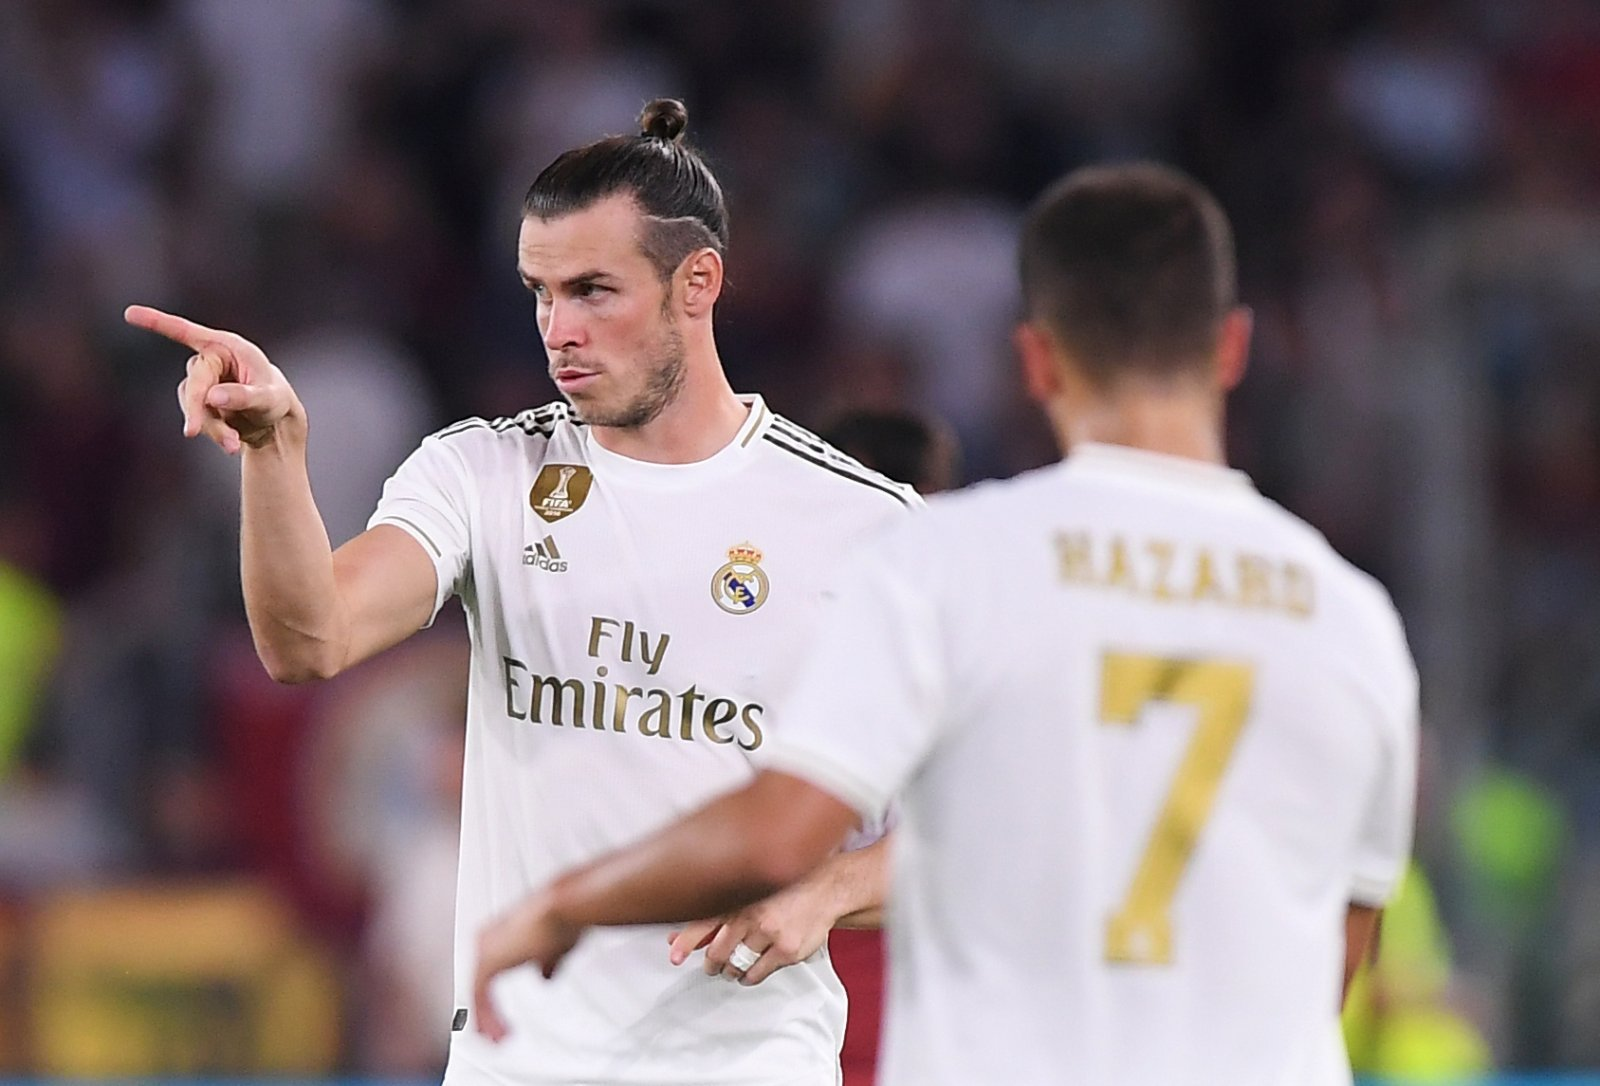 Real Madrid: Fans react to Gareth Bale injury news